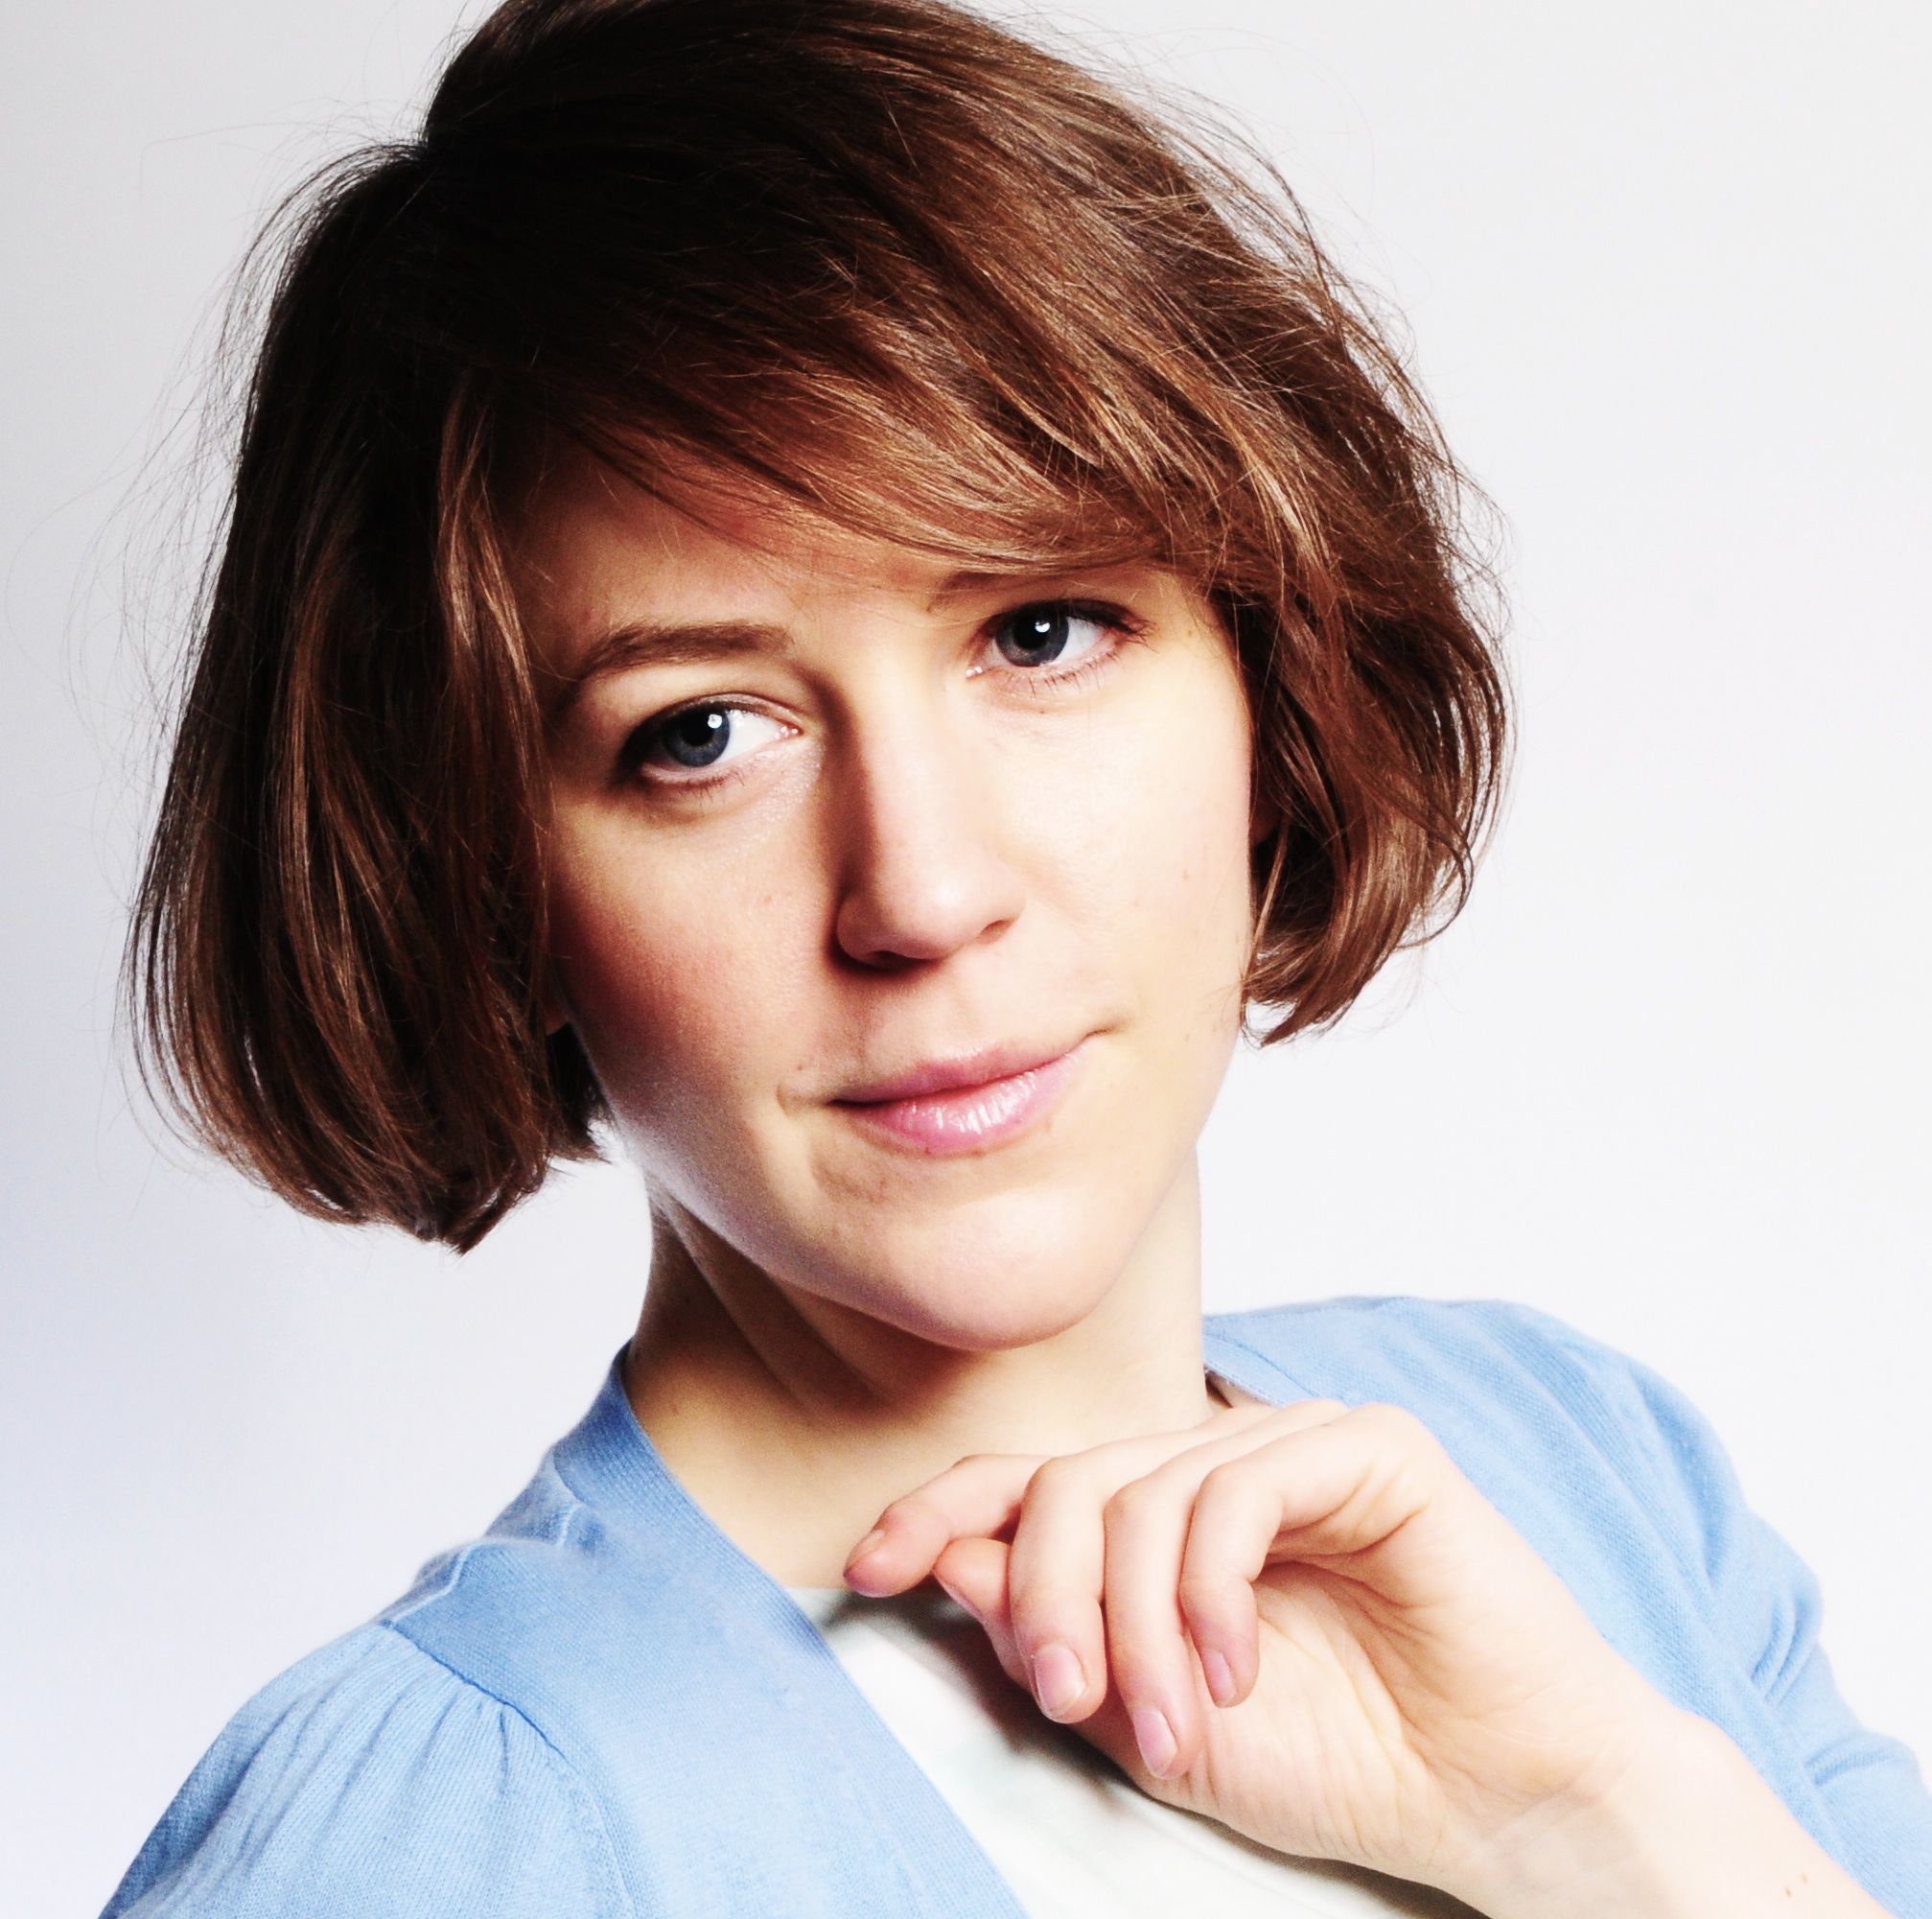 gemma whelan nudographygemma whelan singing, gemma whelan height, gemma whelan instagram, gemma whelan gif, gemma whelan, gemma whelan twitter, gemma whelan season 5, gemma whelan actress, gemma whelan game of thrones, gemma whelan imdb, gemma whelan nudography, gemma whelan stand up, gemma whelan karen matthews, gemma whelan facebook, gemma whelan comedy, gemma whelan boyfriend, gemma whelan gay, gemma whelan agent